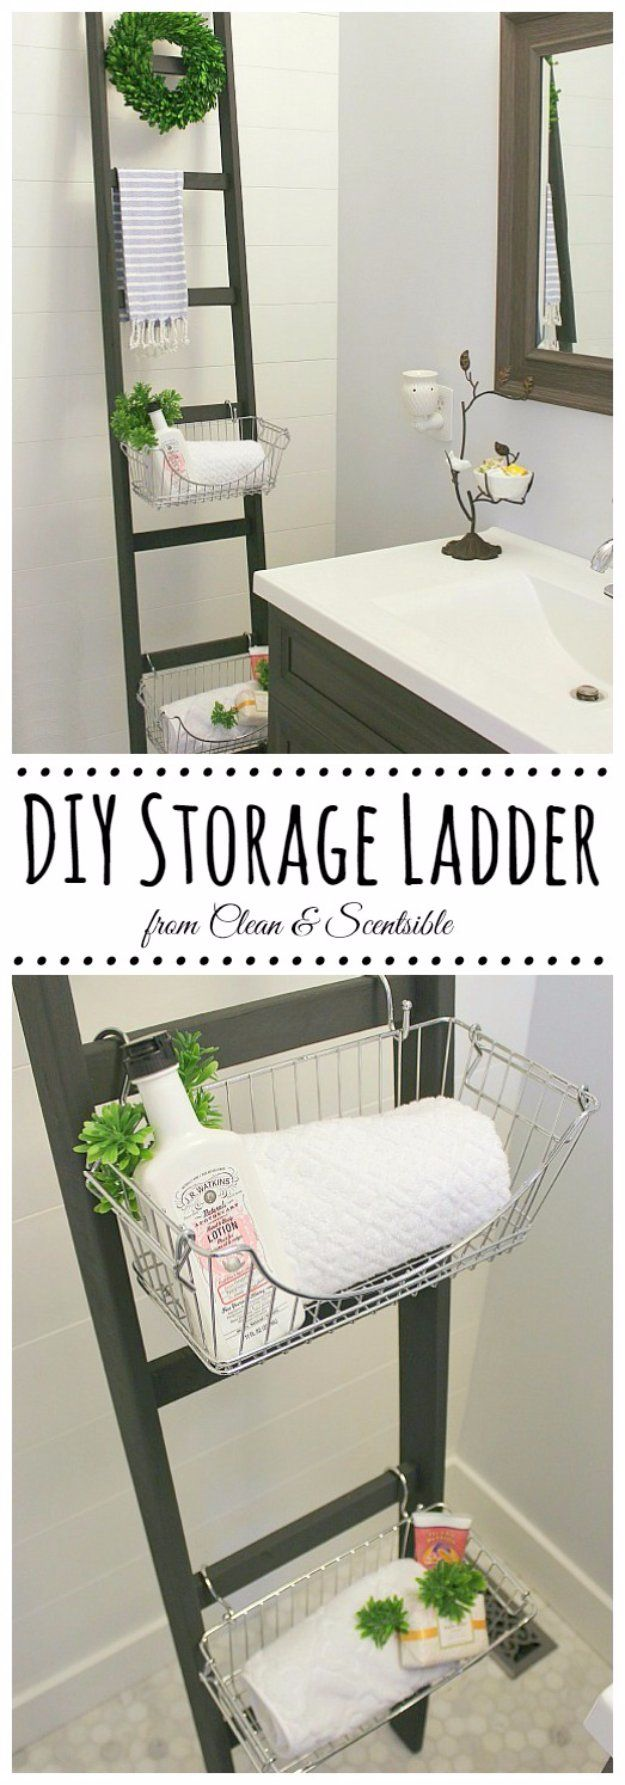 31 Brilliant DIY Decor Ideas for Your Bathroom | For the Home ...